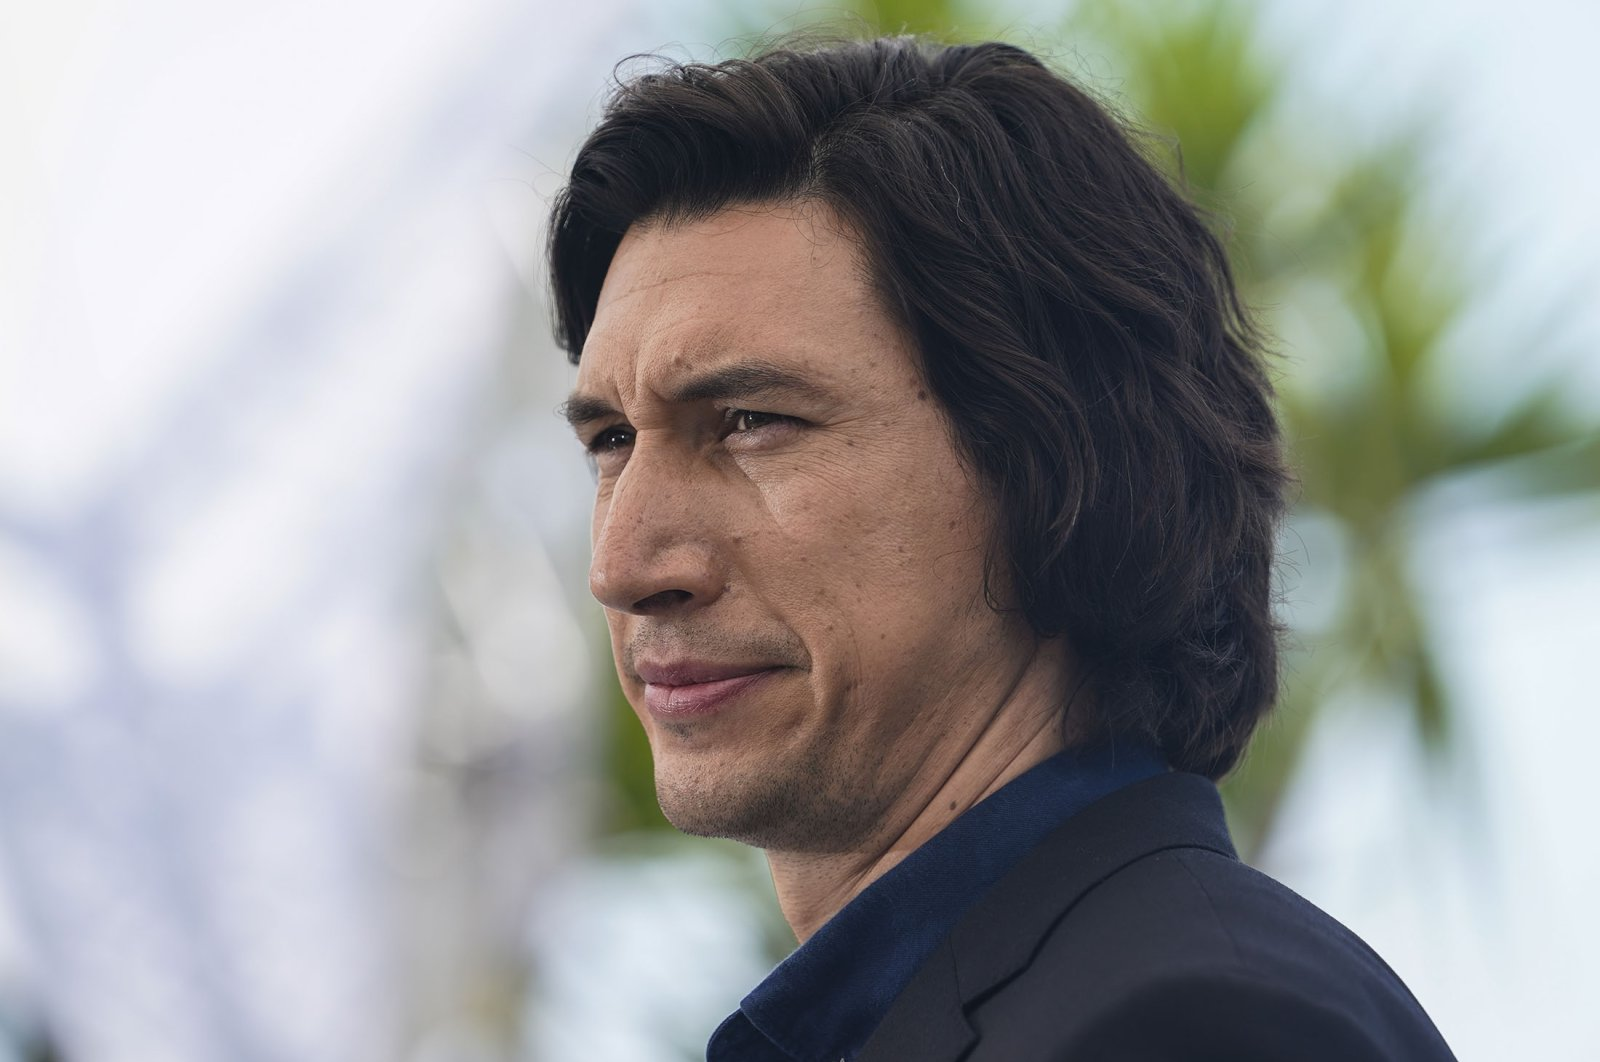 """Adam Driver poses for photographers at the photocall for the film """"Annette"""" at the 74th international film festival, Cannes, southern France, July 6, 2021. (AP Photo, File)"""